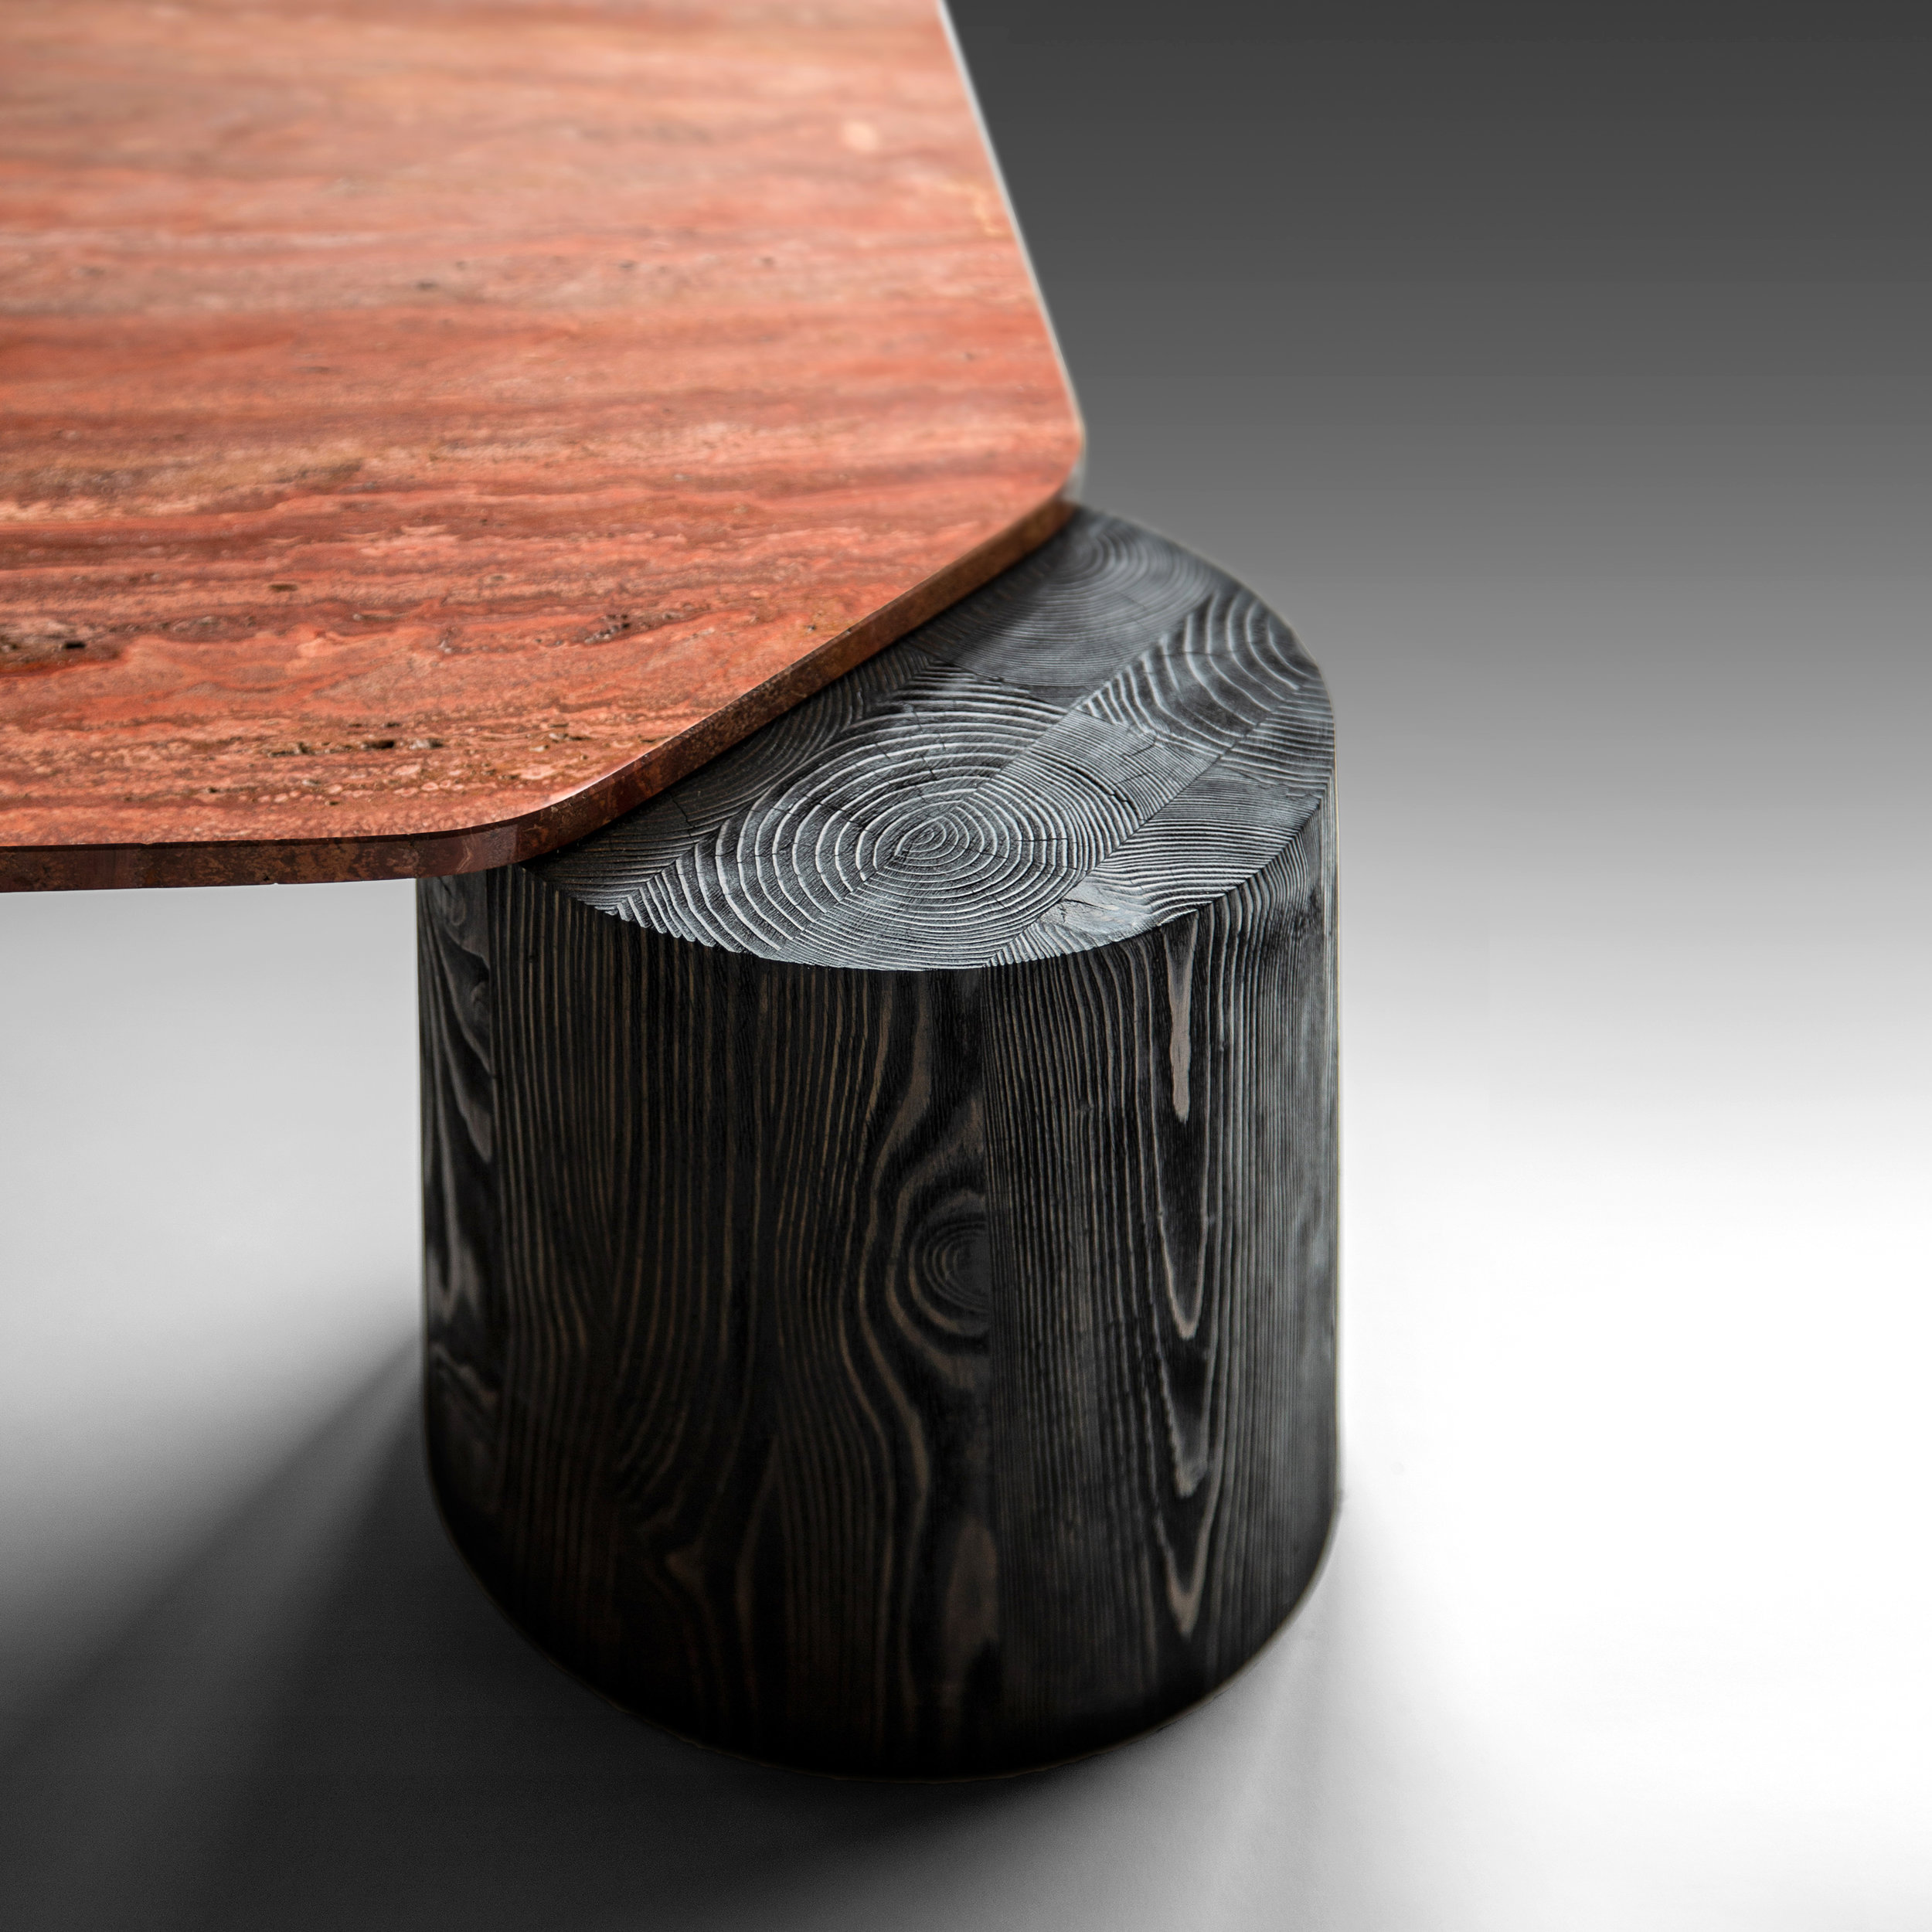 Magnifico coffee table Detail © Niel Vosloo